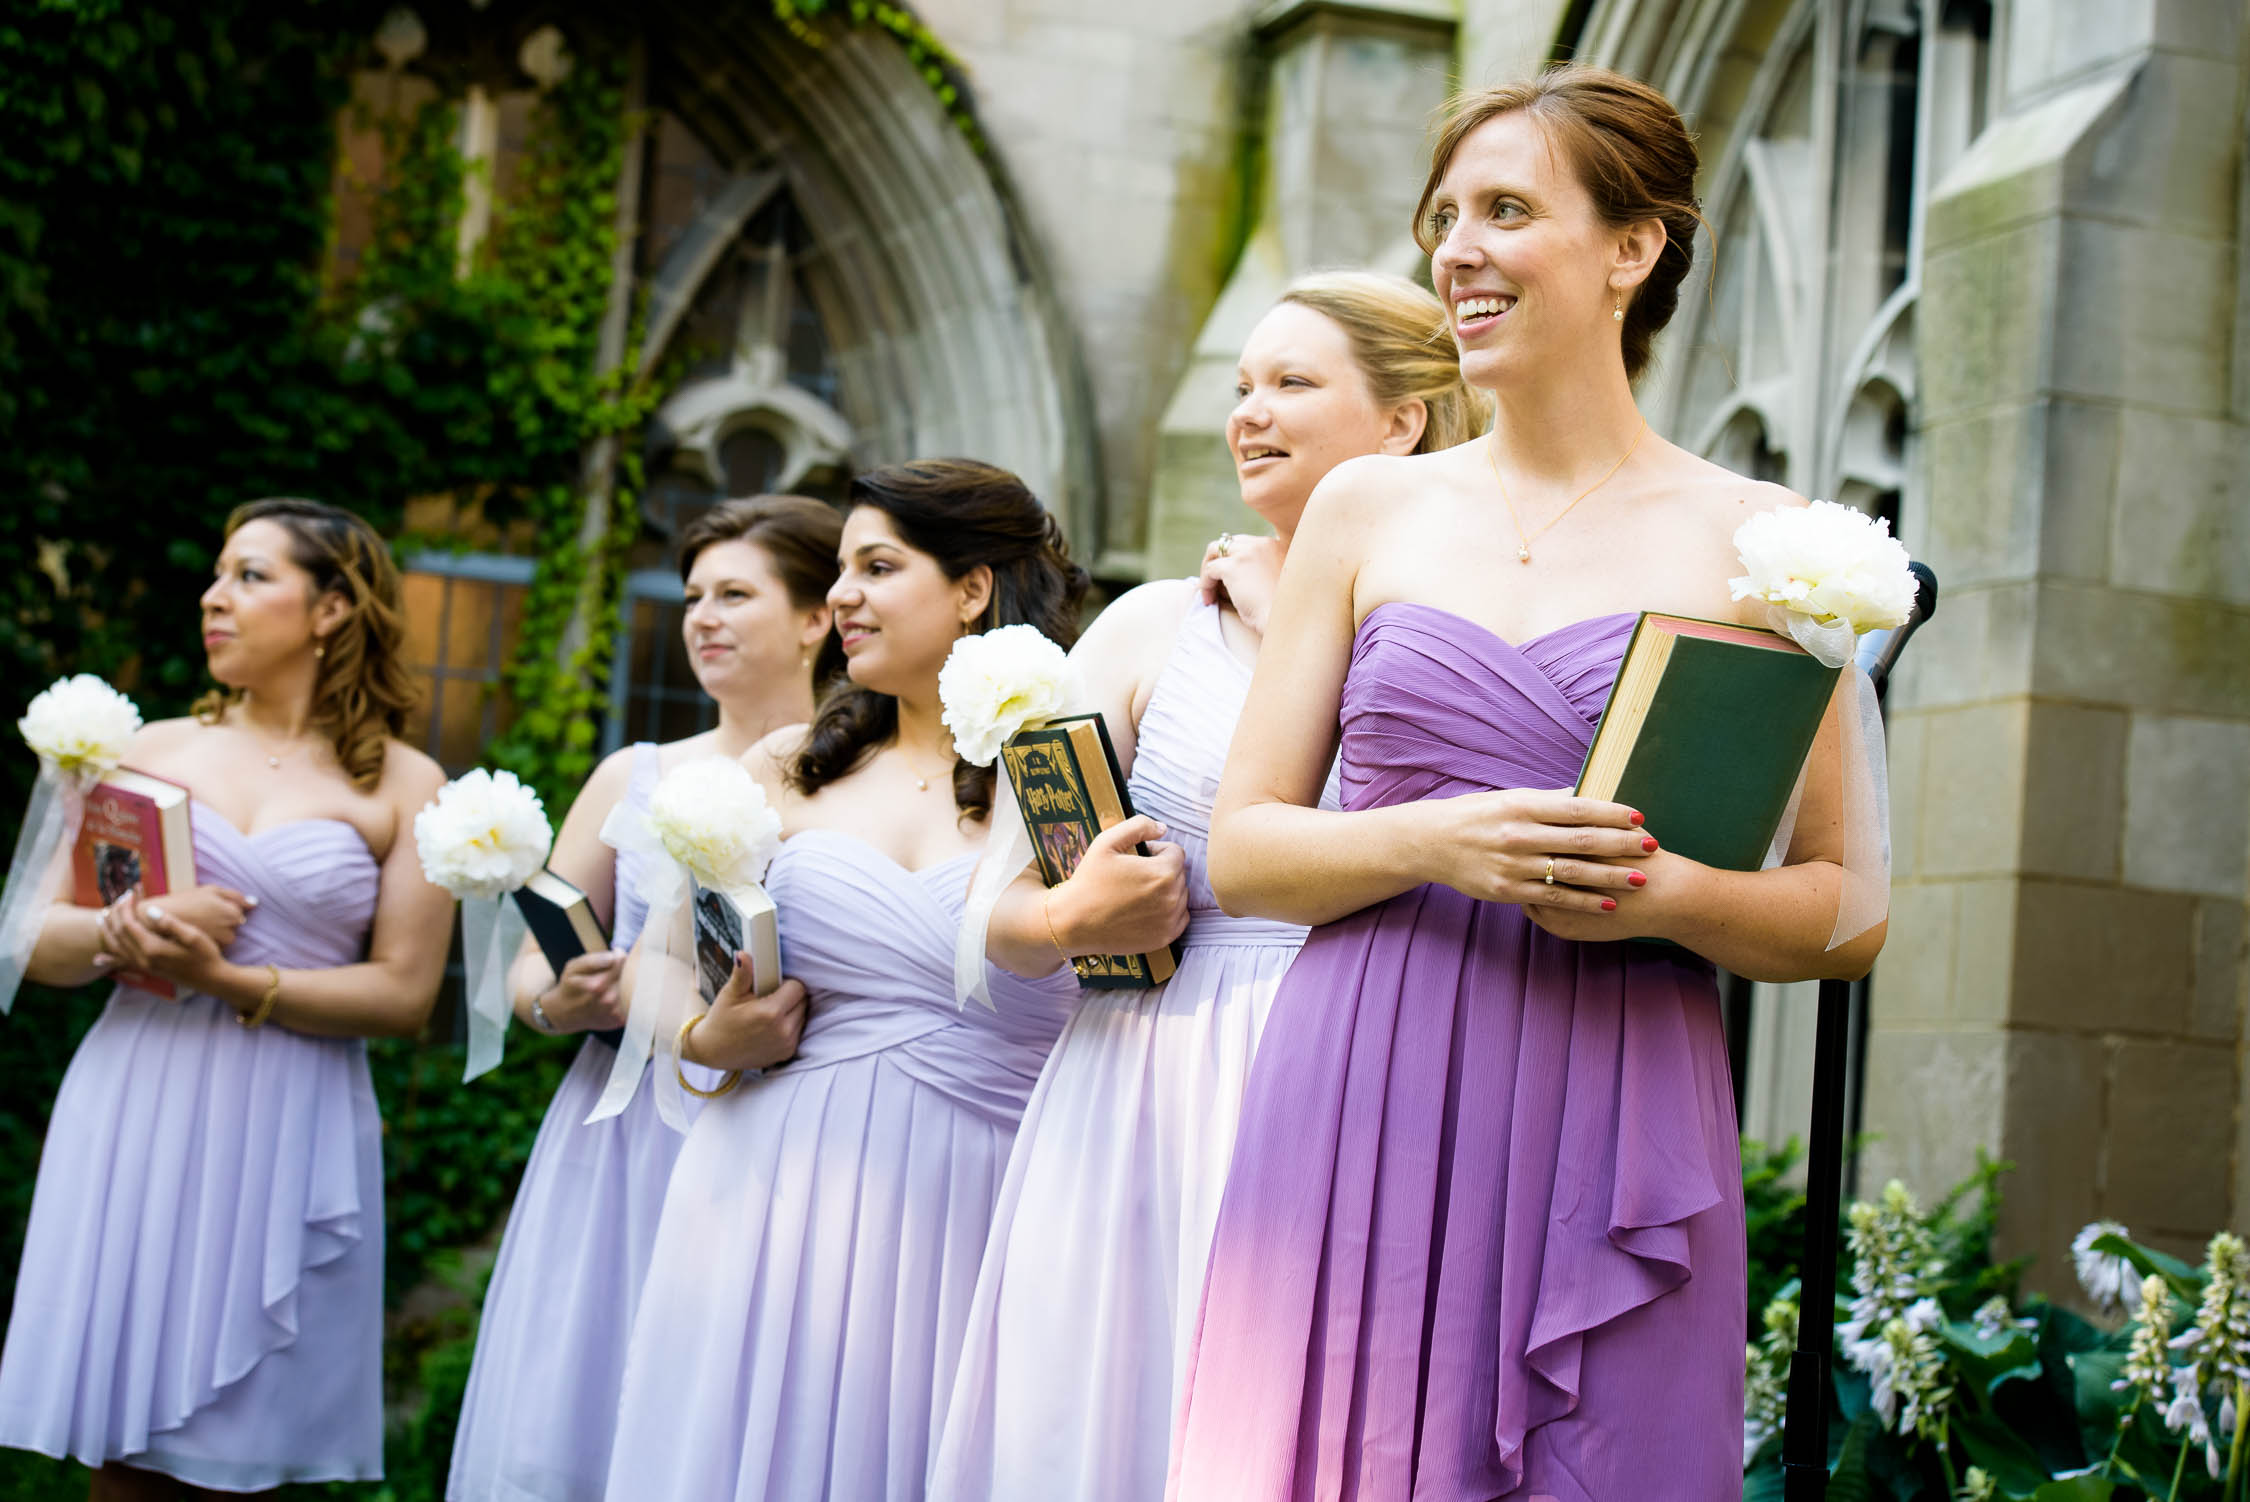 Bridesmaid wait for the bride during a University of Chicago wedding ceremony.